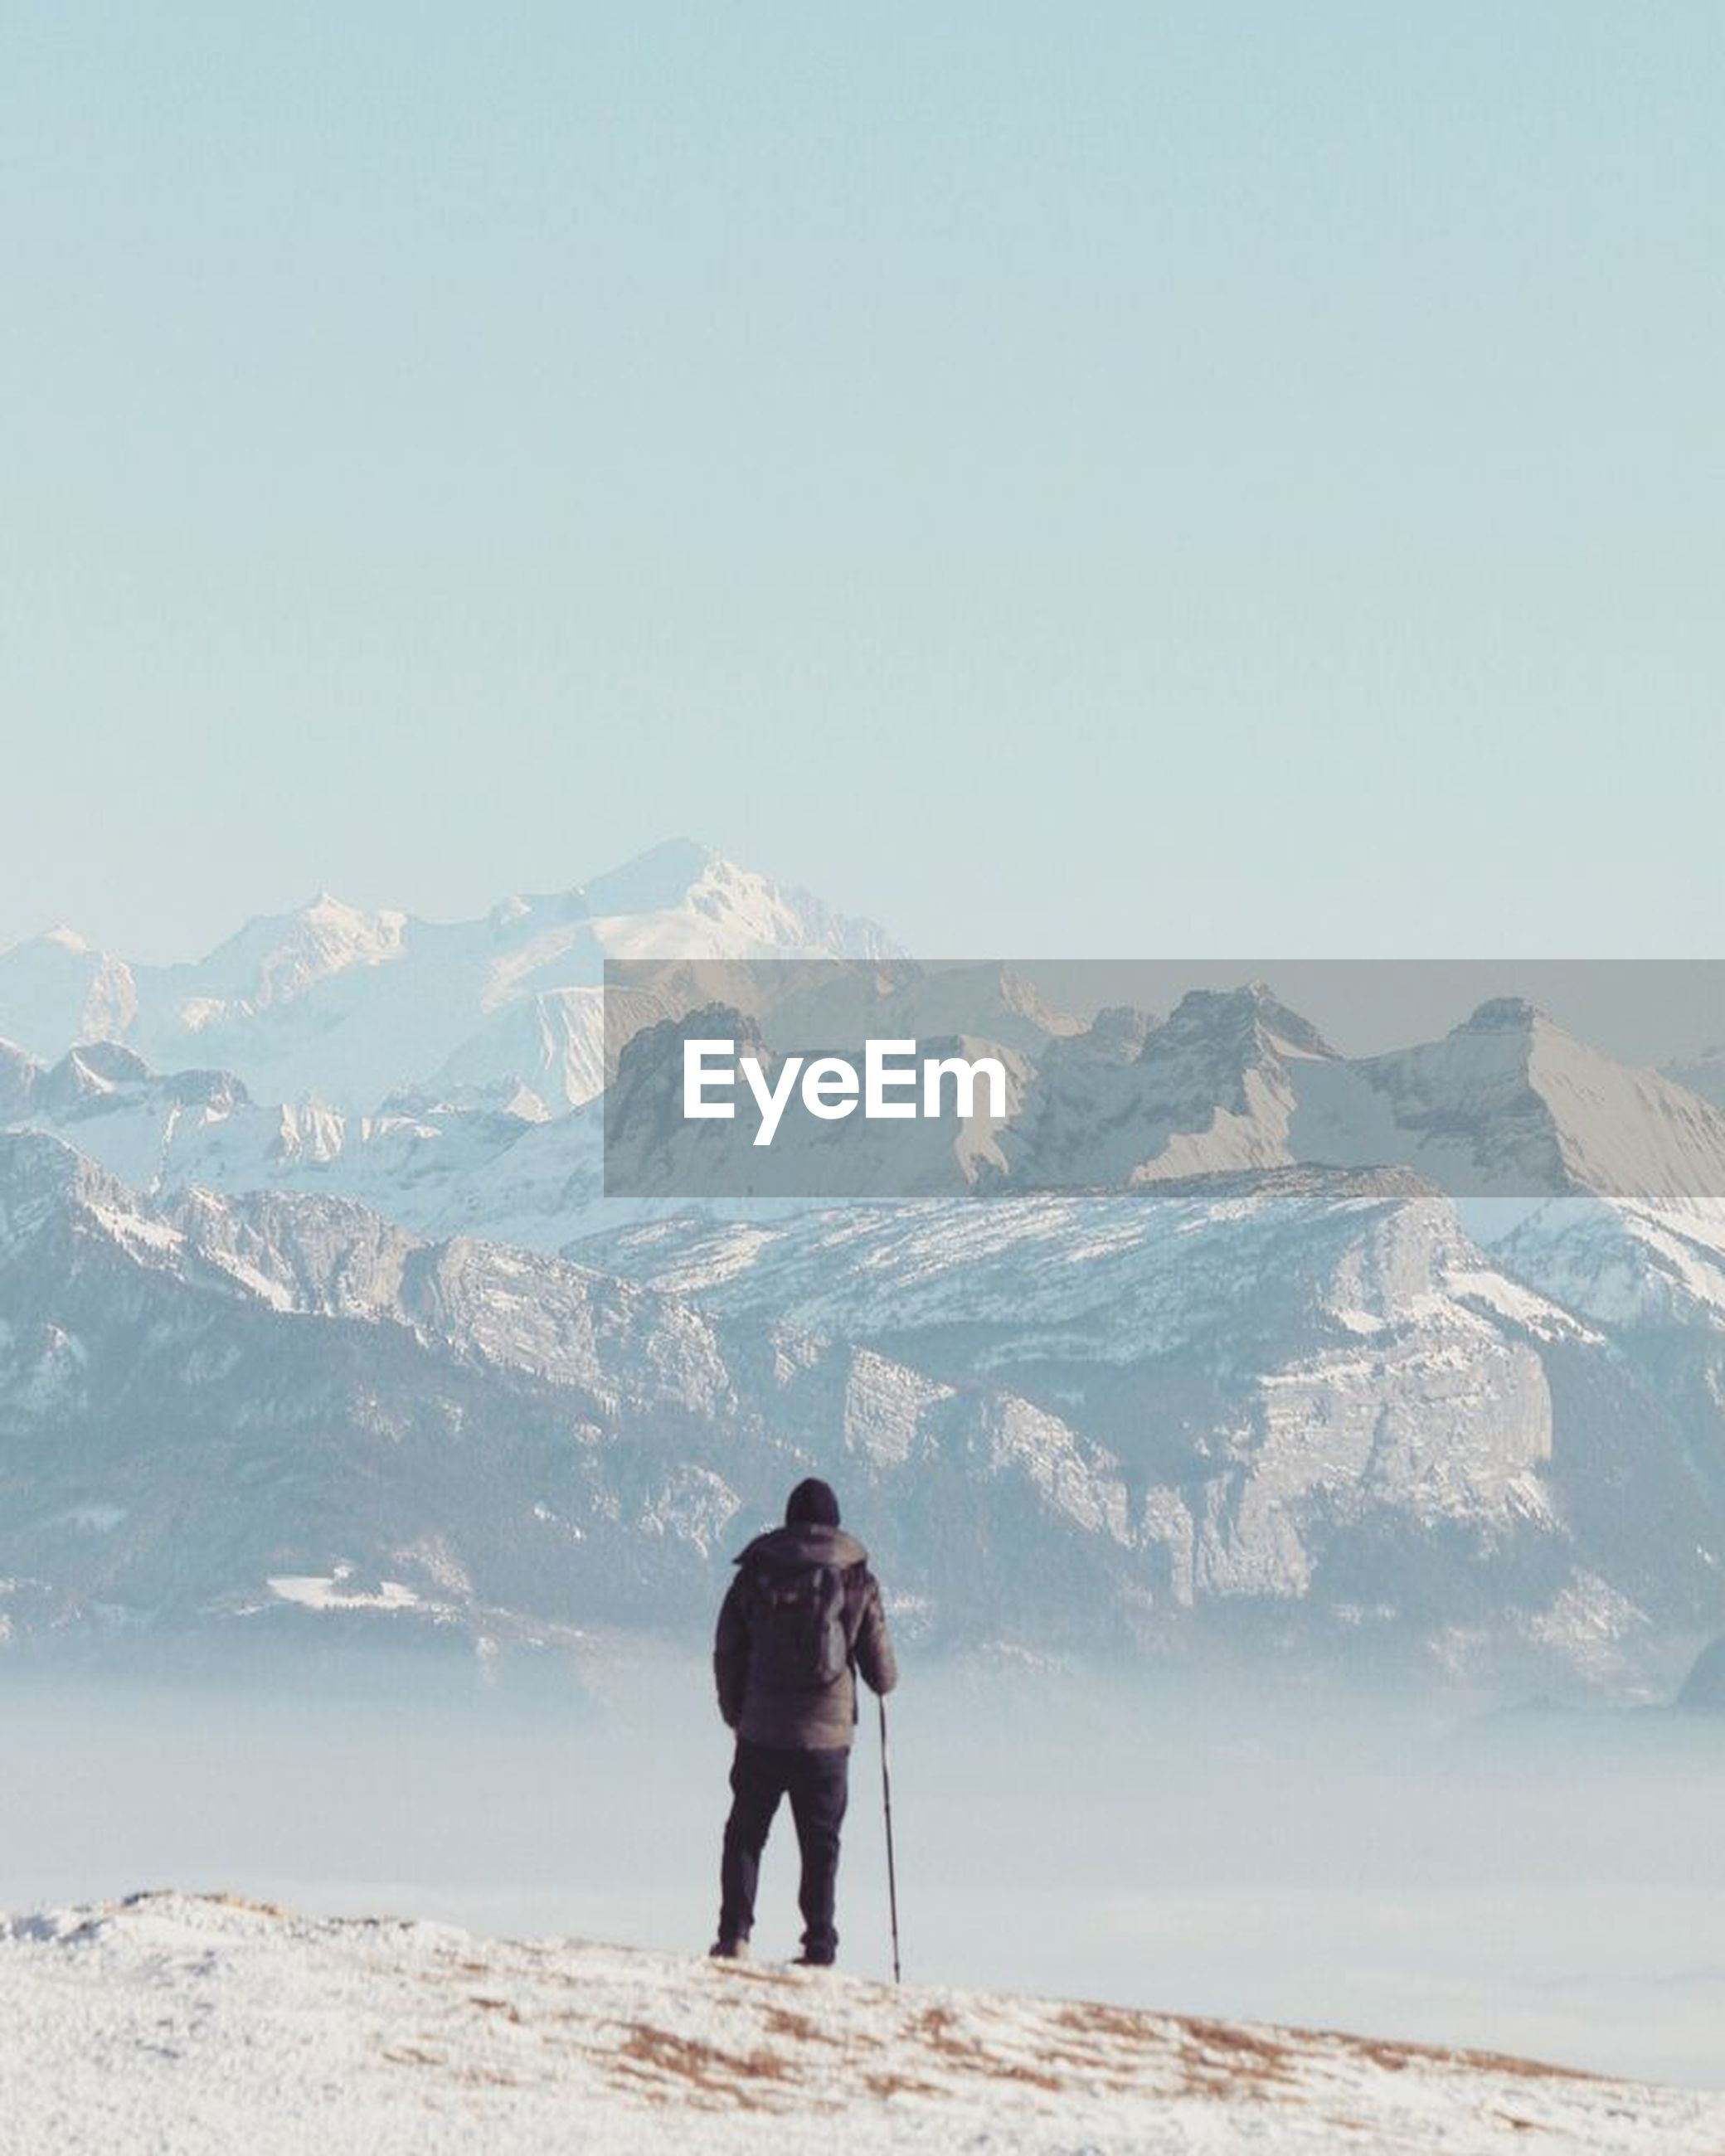 rear view, mountain, real people, full length, leisure activity, nature, copy space, one person, adventure, winter, beauty in nature, mountain range, lifestyles, standing, snow, hiking, scenics, vacations, cold temperature, day, outdoors, clear sky, warm clothing, women, men, sky, adult, adults only, people